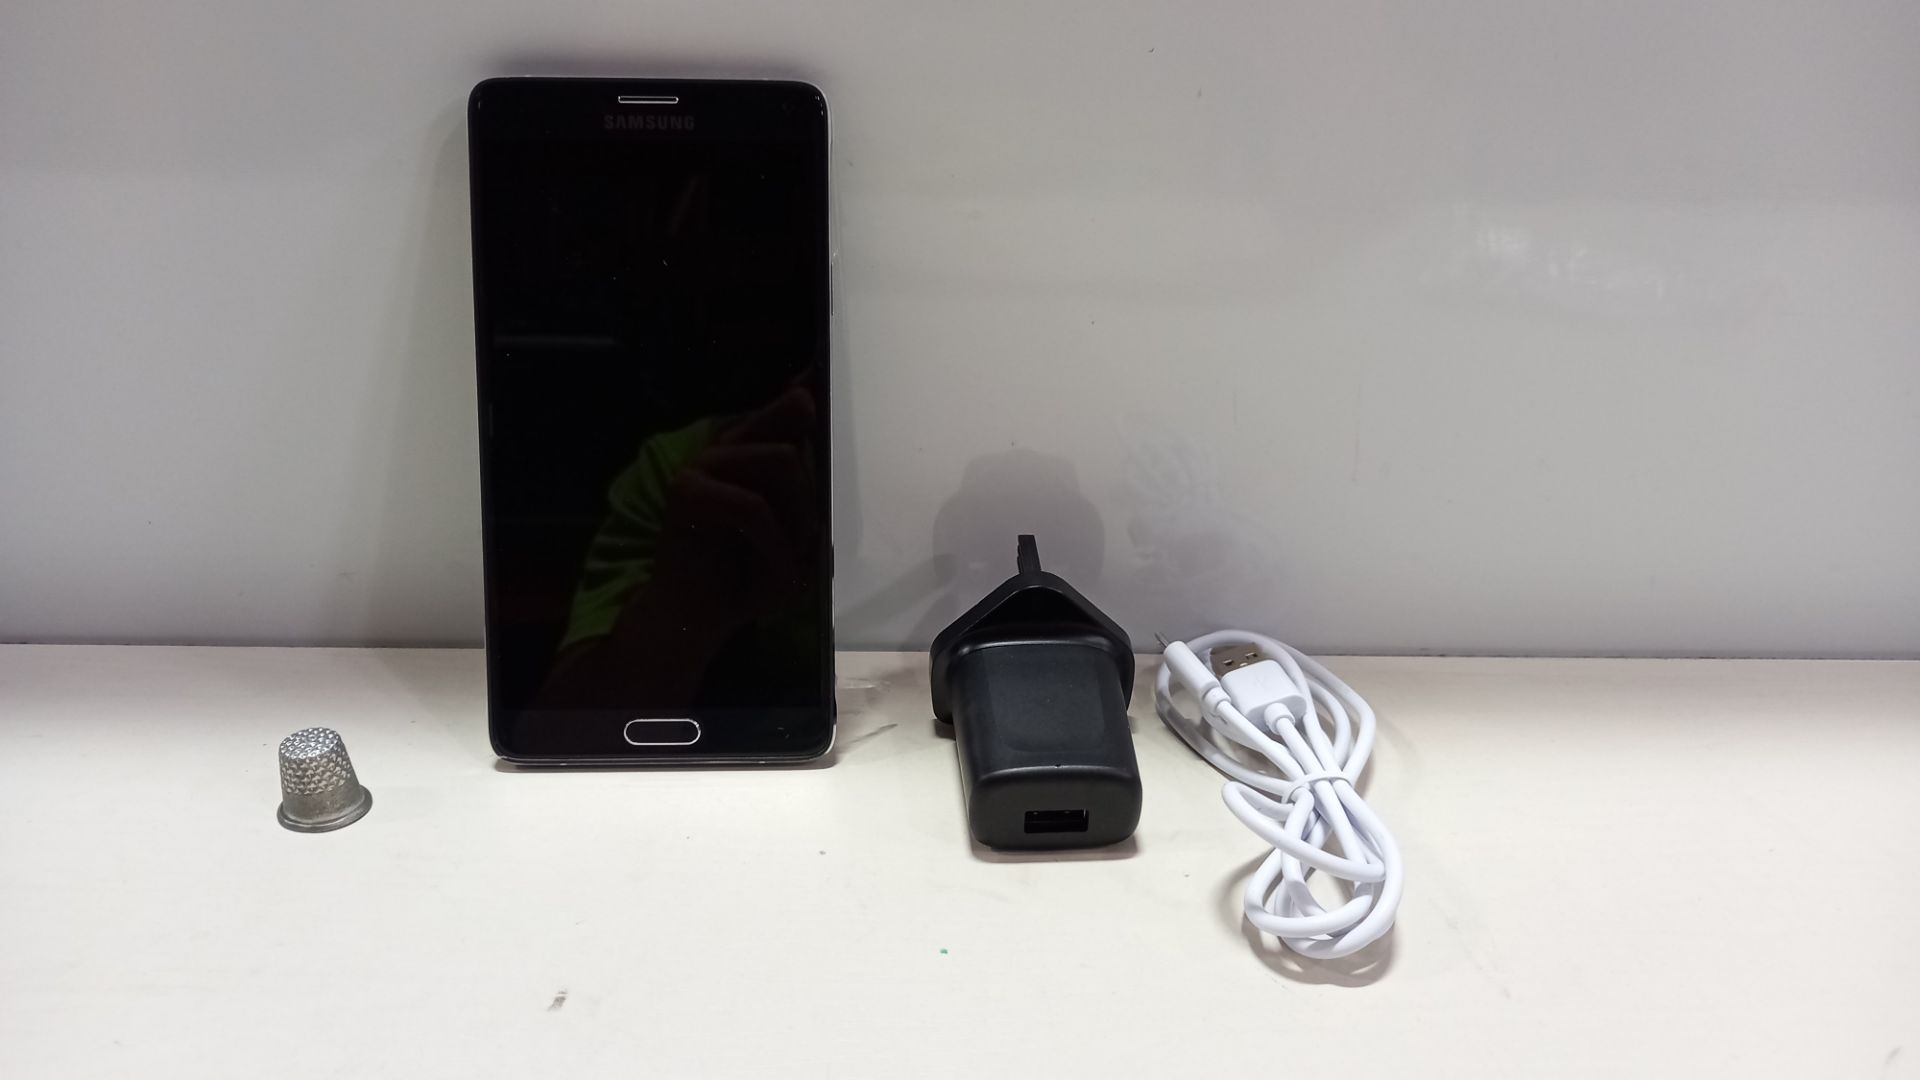 1 X SAMSUNG NOTE 4 PHONE LIVE DEMO UNIT - WITH CHARGER